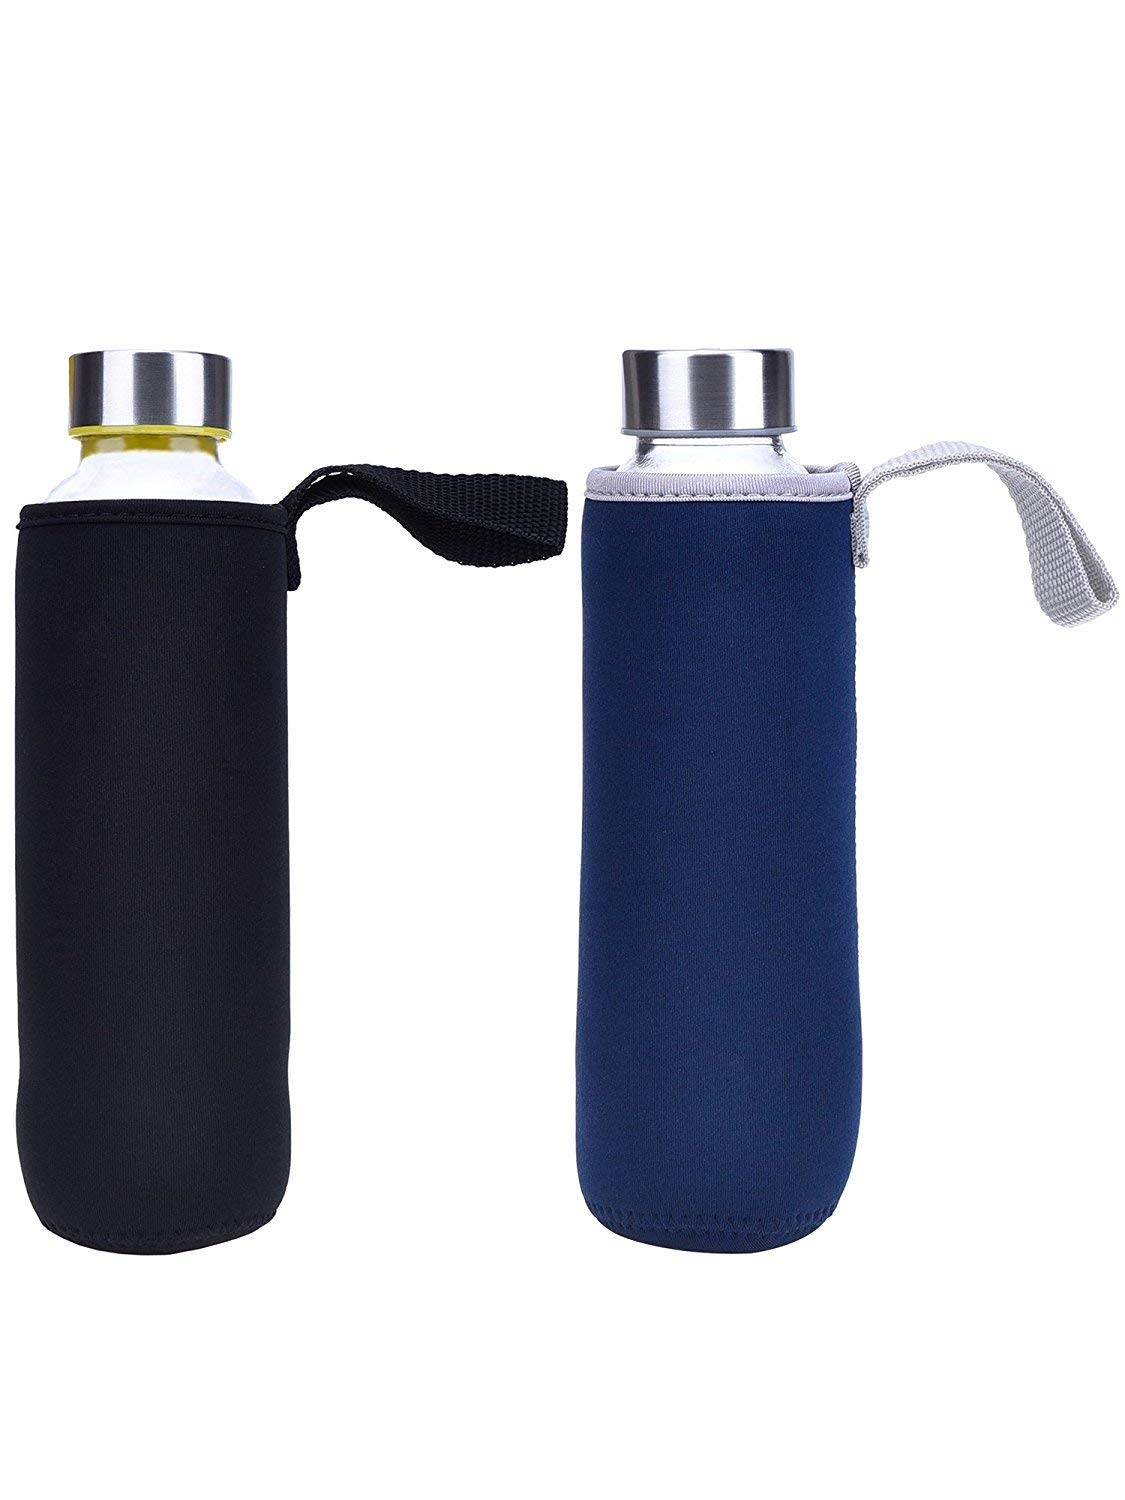 Black and Blue Winallc 2 Pack Water Bottle Sleeve Neoprene Bottle Carrier Nylon Bottle Sleeve for 19.4 oz//550 ml Glass Water Bottle with Cup Brush